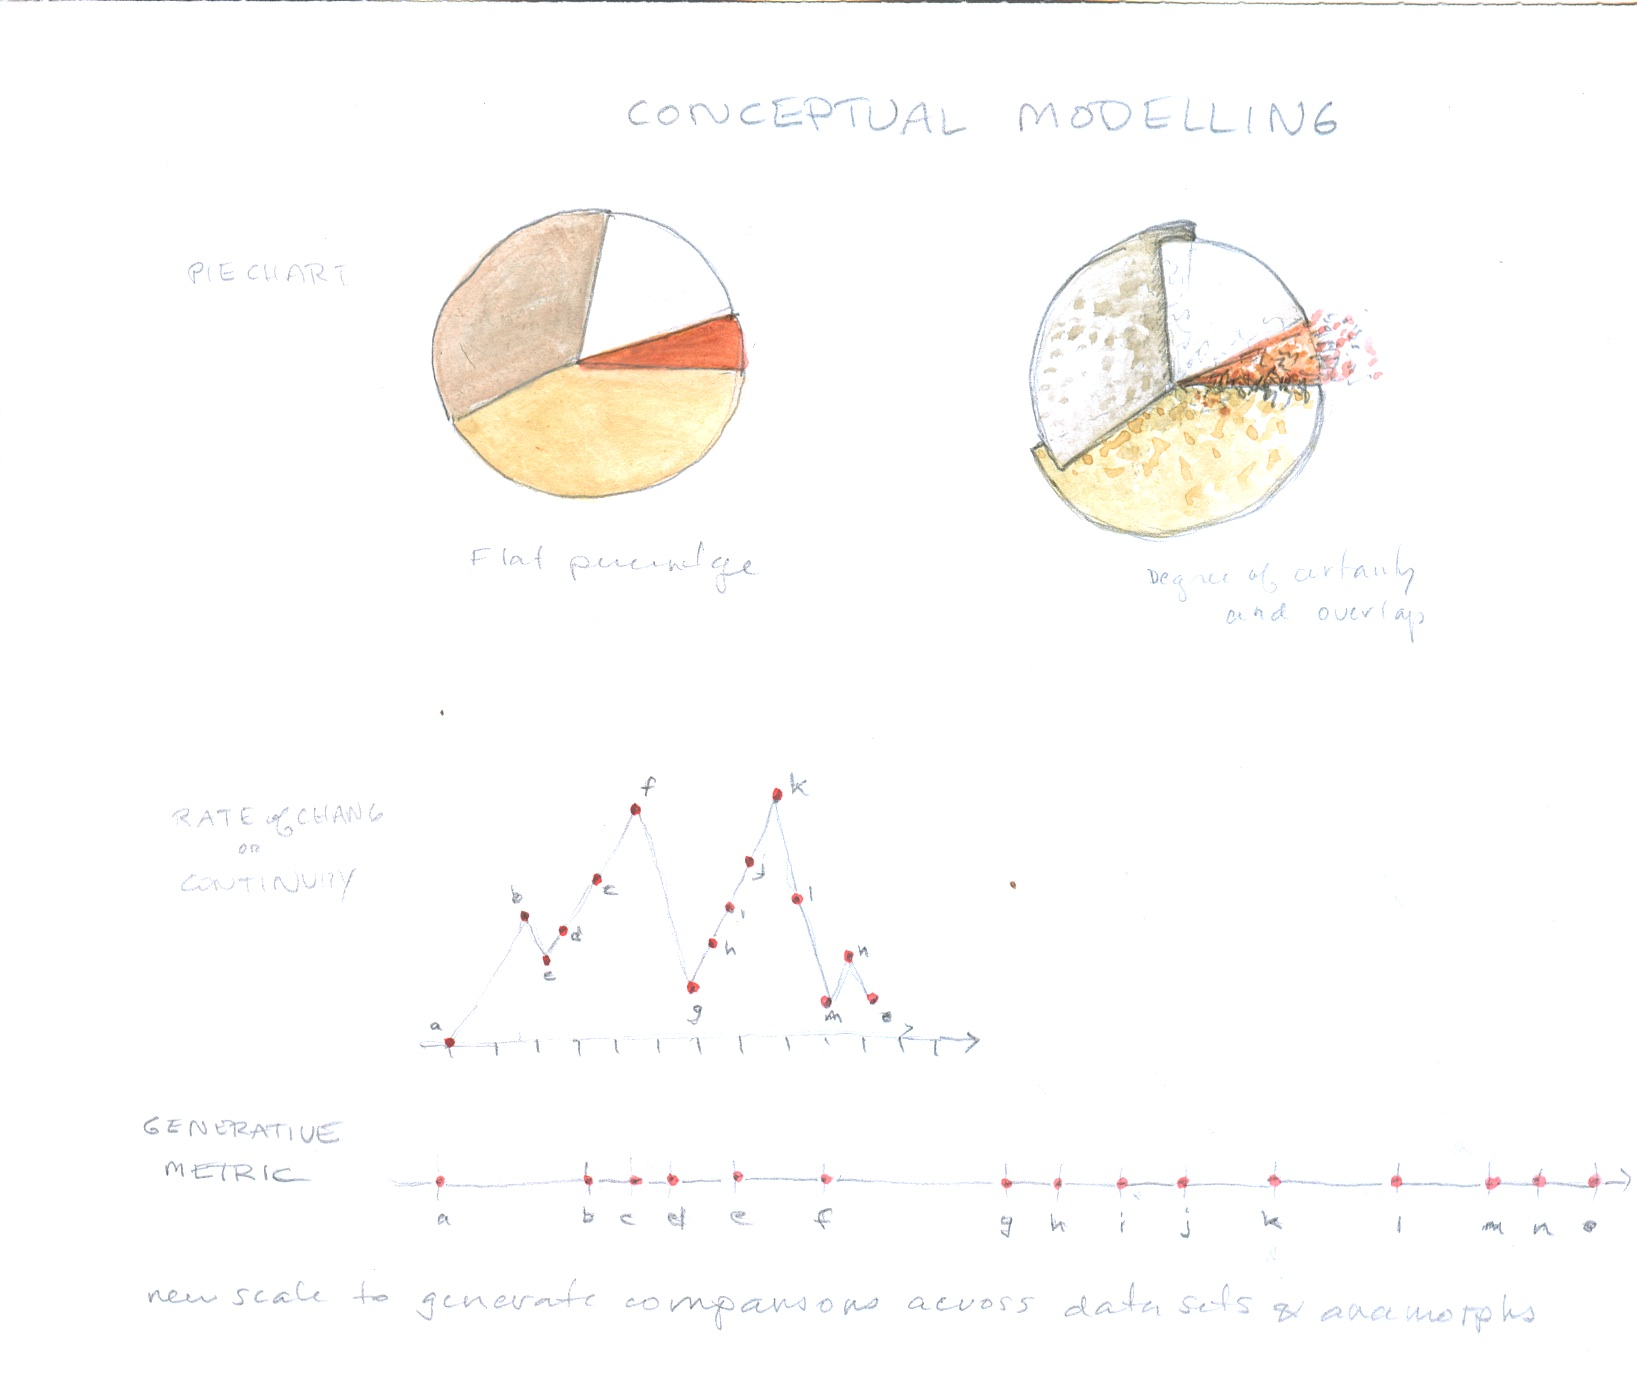 Pieg below the chart is a generative metric similar to that used to generate the anamorph scales above it is not related to the pie chart nvjuhfo Gallery